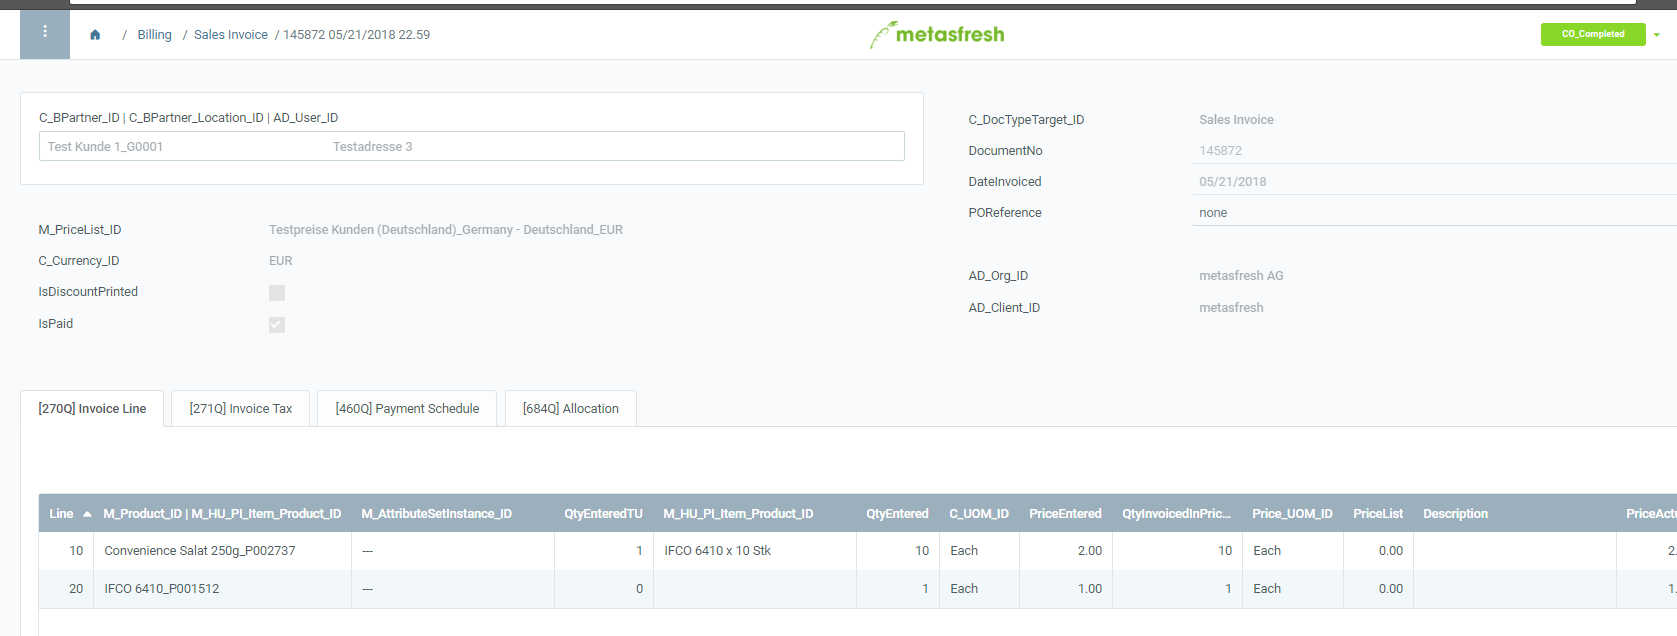 proforma invoice via sales order workflow issue 4035 metasfresh